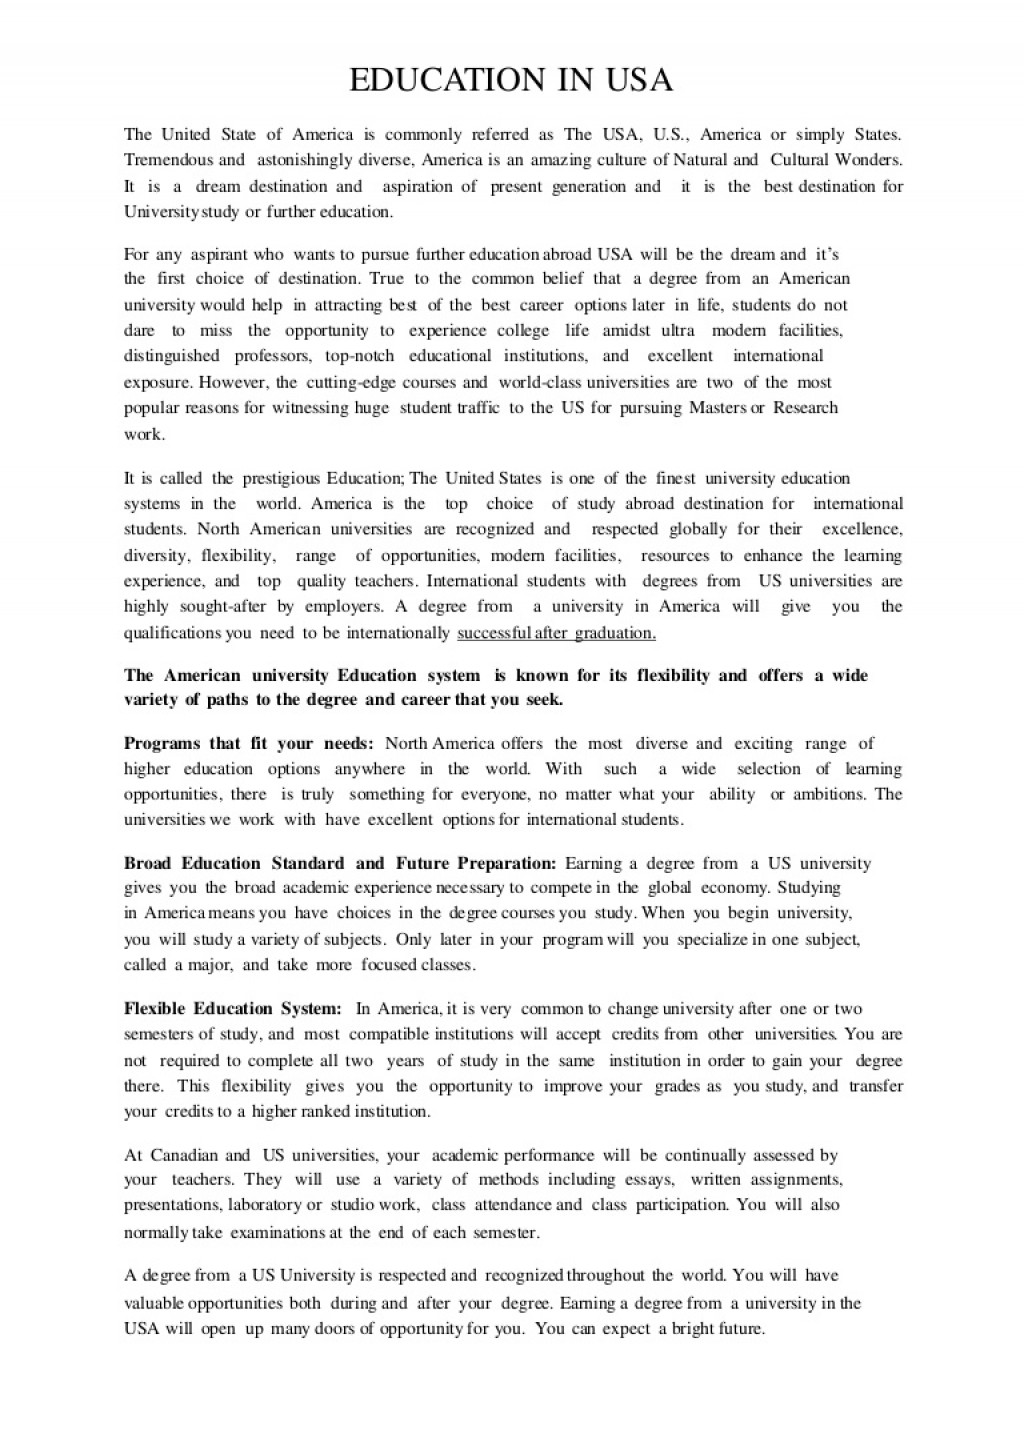 006 Essay Example Education In America Whb12 Jpg Pay For Investments Admission Higher Educationinusappt Phpapp01 Thumbn History Of Reform Problems Inequality Poverty And Free Stupendous What Is An American Thesis Your Dream Ideas Large